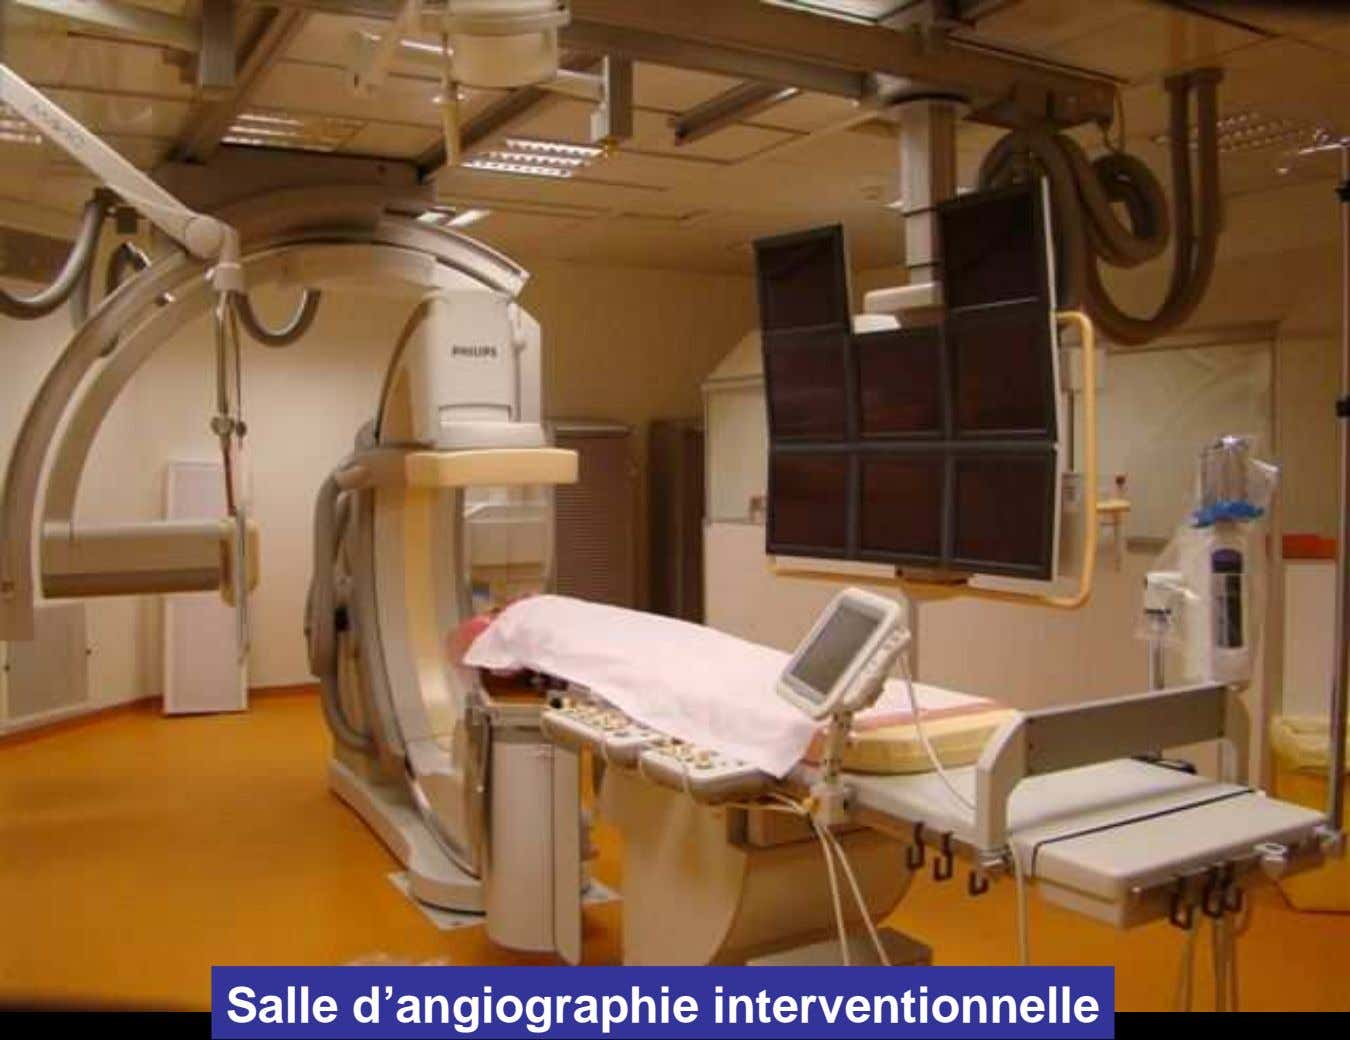 Salle d'angiographie interventionnelle